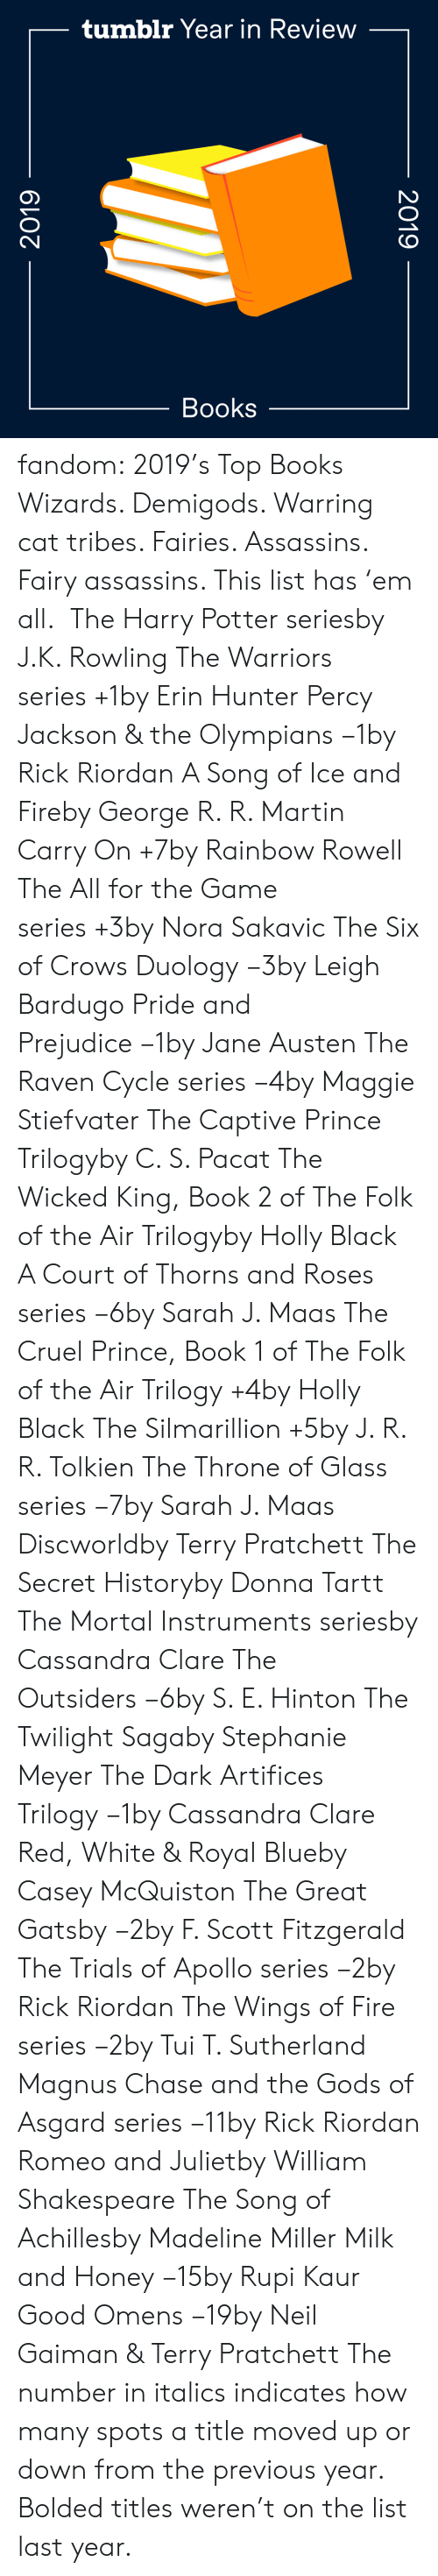 stephanie: tumblr Year in Review  Books  2019  2019 fandom:  2019's Top Books  Wizards. Demigods. Warring cat tribes. Fairies. Assassins. Fairy assassins. This list has 'em all.   The Harry Potter seriesby J.K. Rowling  The Warriors series +1by Erin Hunter  Percy Jackson & the Olympians −1by Rick Riordan  A Song of Ice and Fireby George R. R. Martin  Carry On +7by Rainbow Rowell  The All for the Game series +3by Nora Sakavic  The Six of Crows Duology −3by Leigh Bardugo  Pride and Prejudice −1by Jane Austen  The Raven Cycle series −4by Maggie Stiefvater  The Captive Prince Trilogyby C. S. Pacat  The Wicked King, Book 2 of The Folk of the Air Trilogyby Holly Black  A Court of Thorns and Roses series −6by Sarah J. Maas  The Cruel Prince, Book 1 of The Folk of the Air Trilogy +4by Holly Black  The Silmarillion +5by J. R. R. Tolkien  The Throne of Glass series −7by Sarah J. Maas  Discworldby Terry Pratchett  The Secret Historyby Donna Tartt  The Mortal Instruments seriesby Cassandra Clare  The Outsiders −6by S. E. Hinton  The Twilight Sagaby Stephanie Meyer  The Dark Artifices Trilogy −1by Cassandra Clare  Red, White & Royal Blueby Casey McQuiston  The Great Gatsby −2by F. Scott Fitzgerald  The Trials of Apollo series −2by Rick Riordan  The Wings of Fire series −2by Tui T. Sutherland  Magnus Chase and the Gods of Asgard series −11by Rick Riordan  Romeo and Julietby William Shakespeare  The Song of Achillesby Madeline Miller  Milk and Honey −15by Rupi Kaur  Good Omens −19by Neil Gaiman & Terry Pratchett The number in italics indicates how many spots a title moved up or down from the previous year. Bolded titles weren't on the list last year.